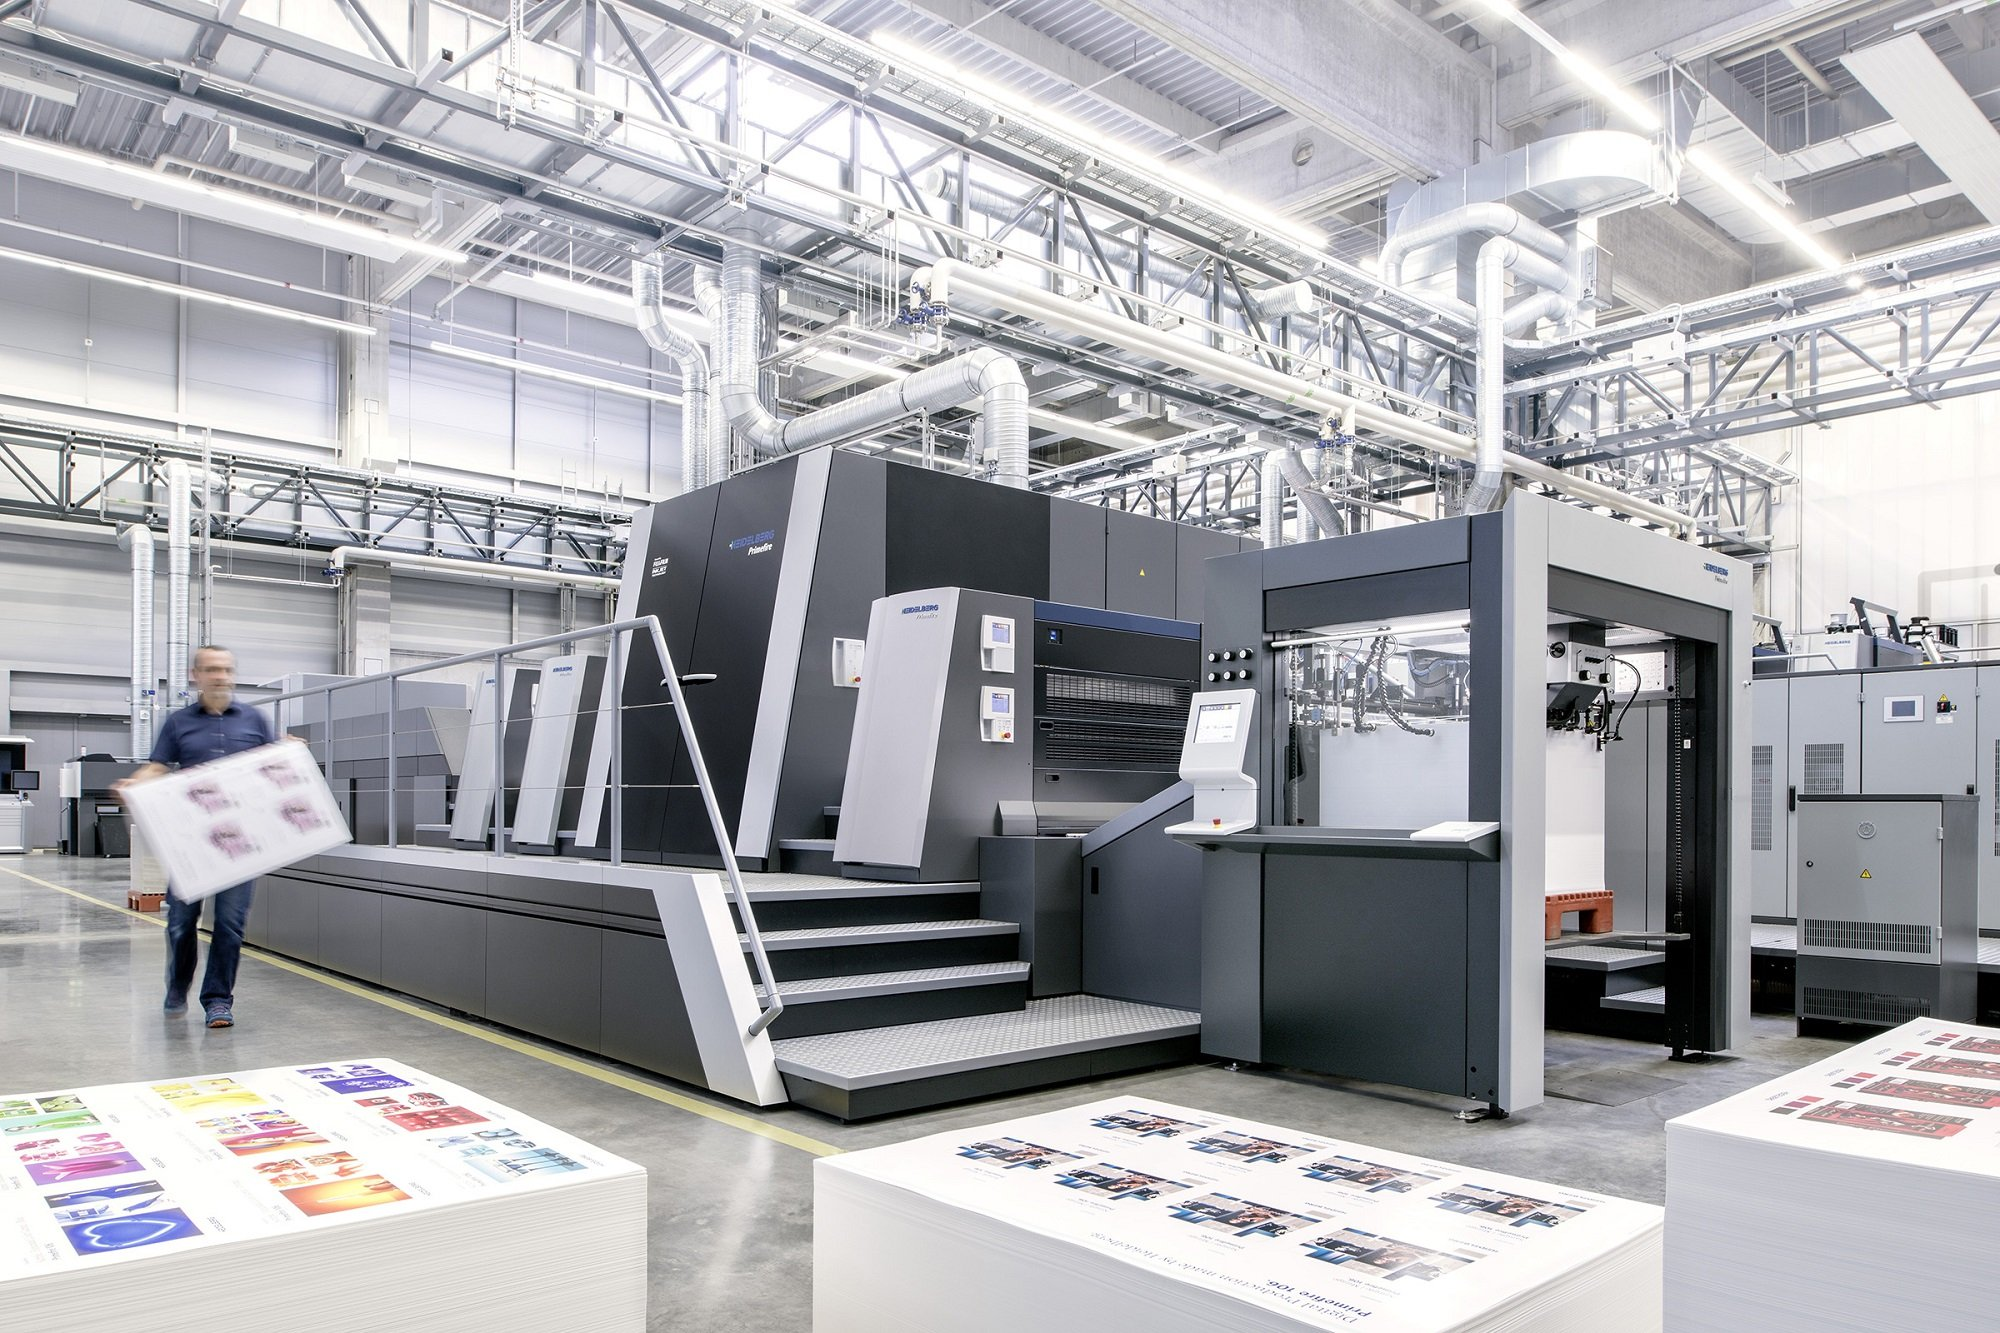 The Primefire 106 is the first industrial digital printing press for packaging in B1 format.